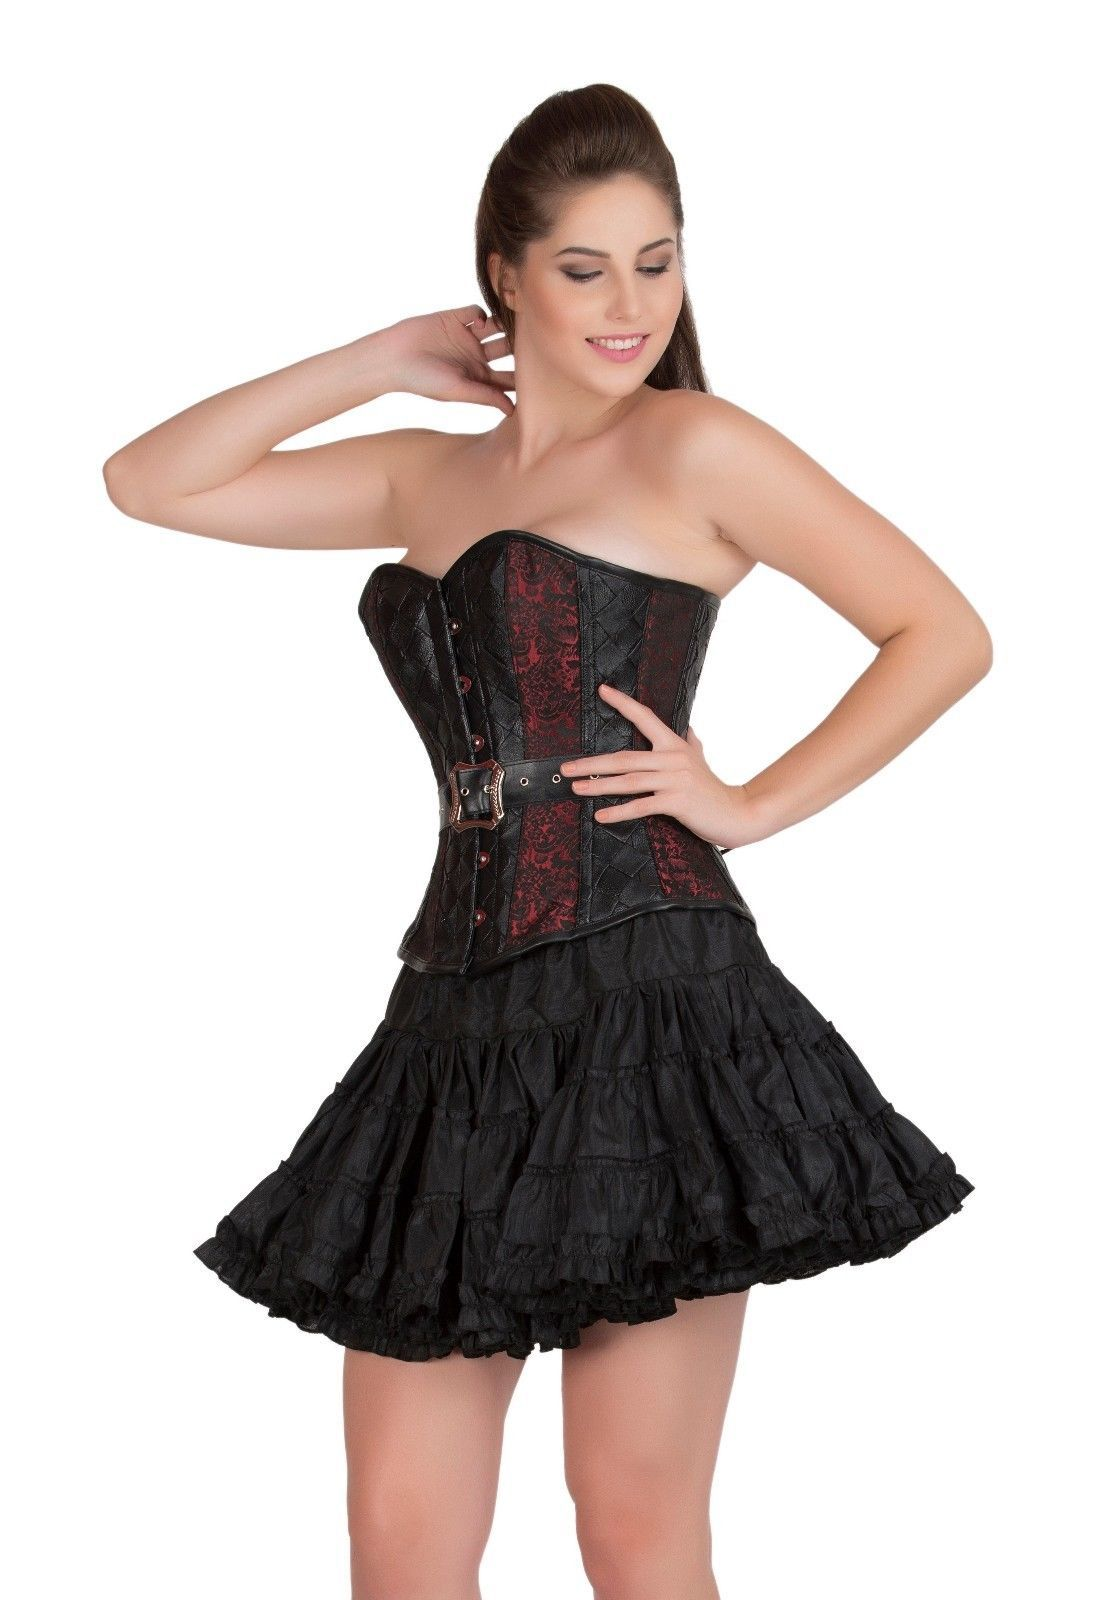 Red Black Brocade & Leather Gothic Waist Training Bustier Overbust Corset Top